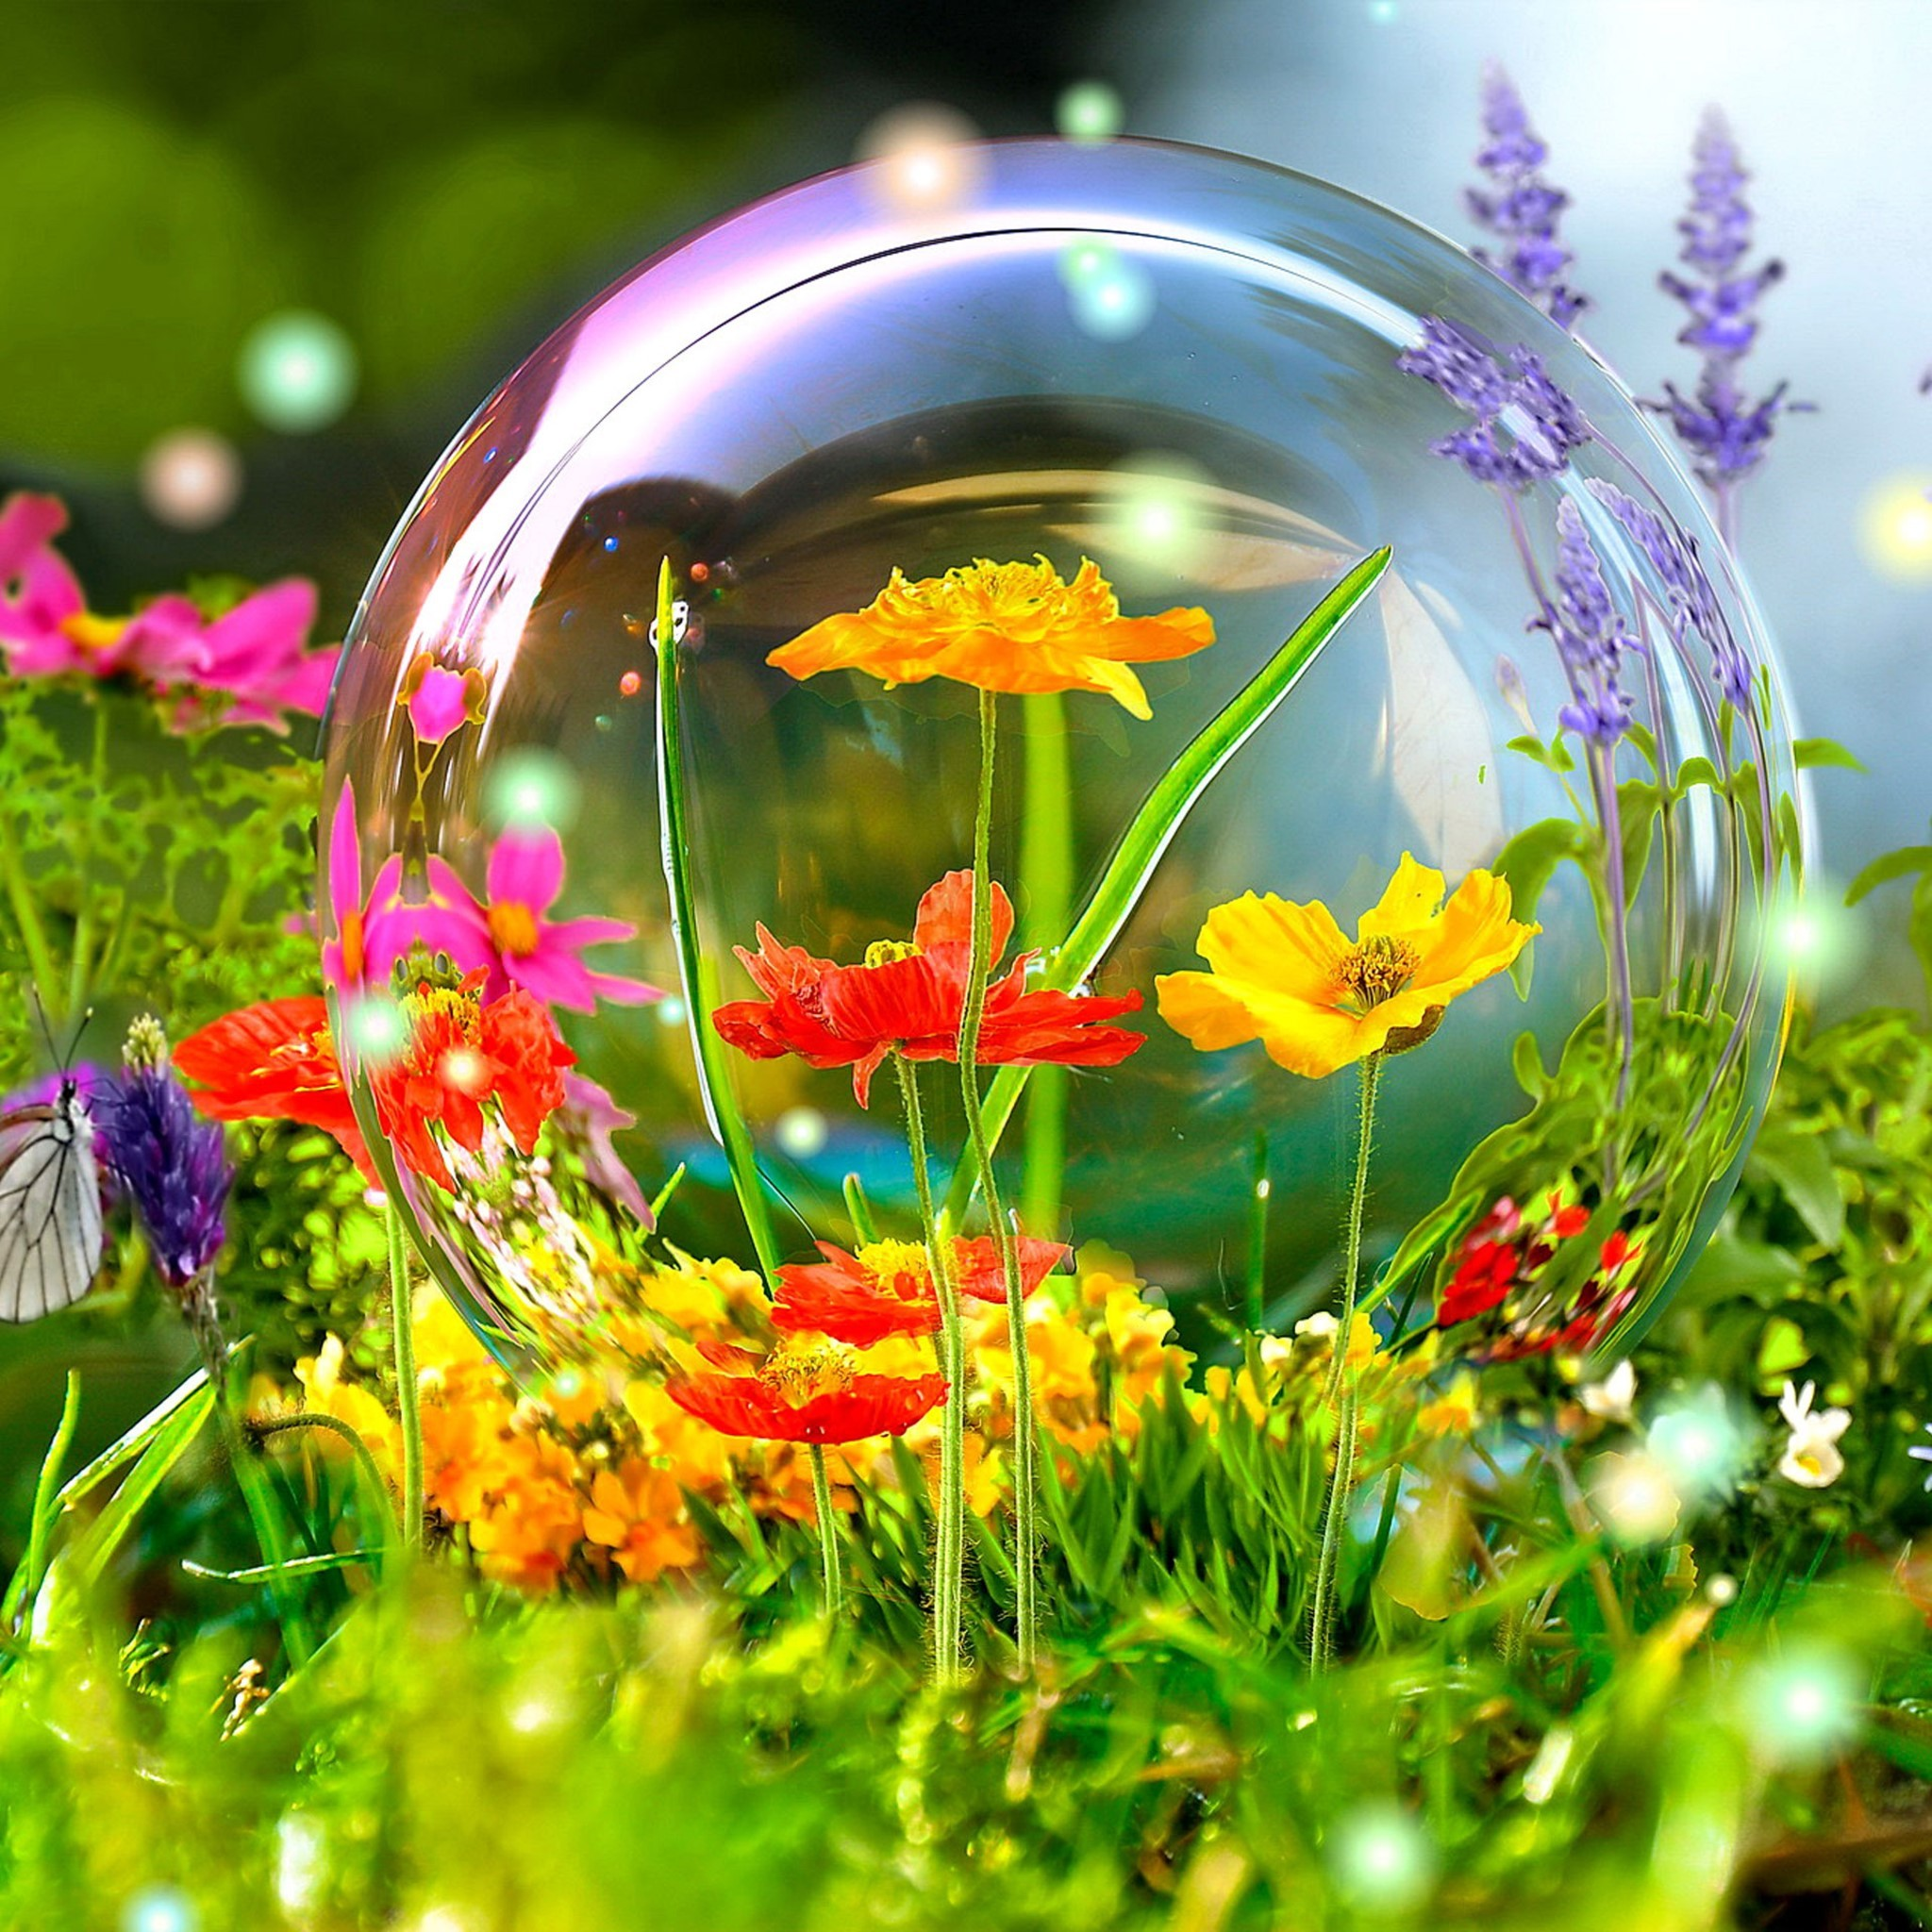 Nature Live Wallpapers For PC – Wallpaper Zone More